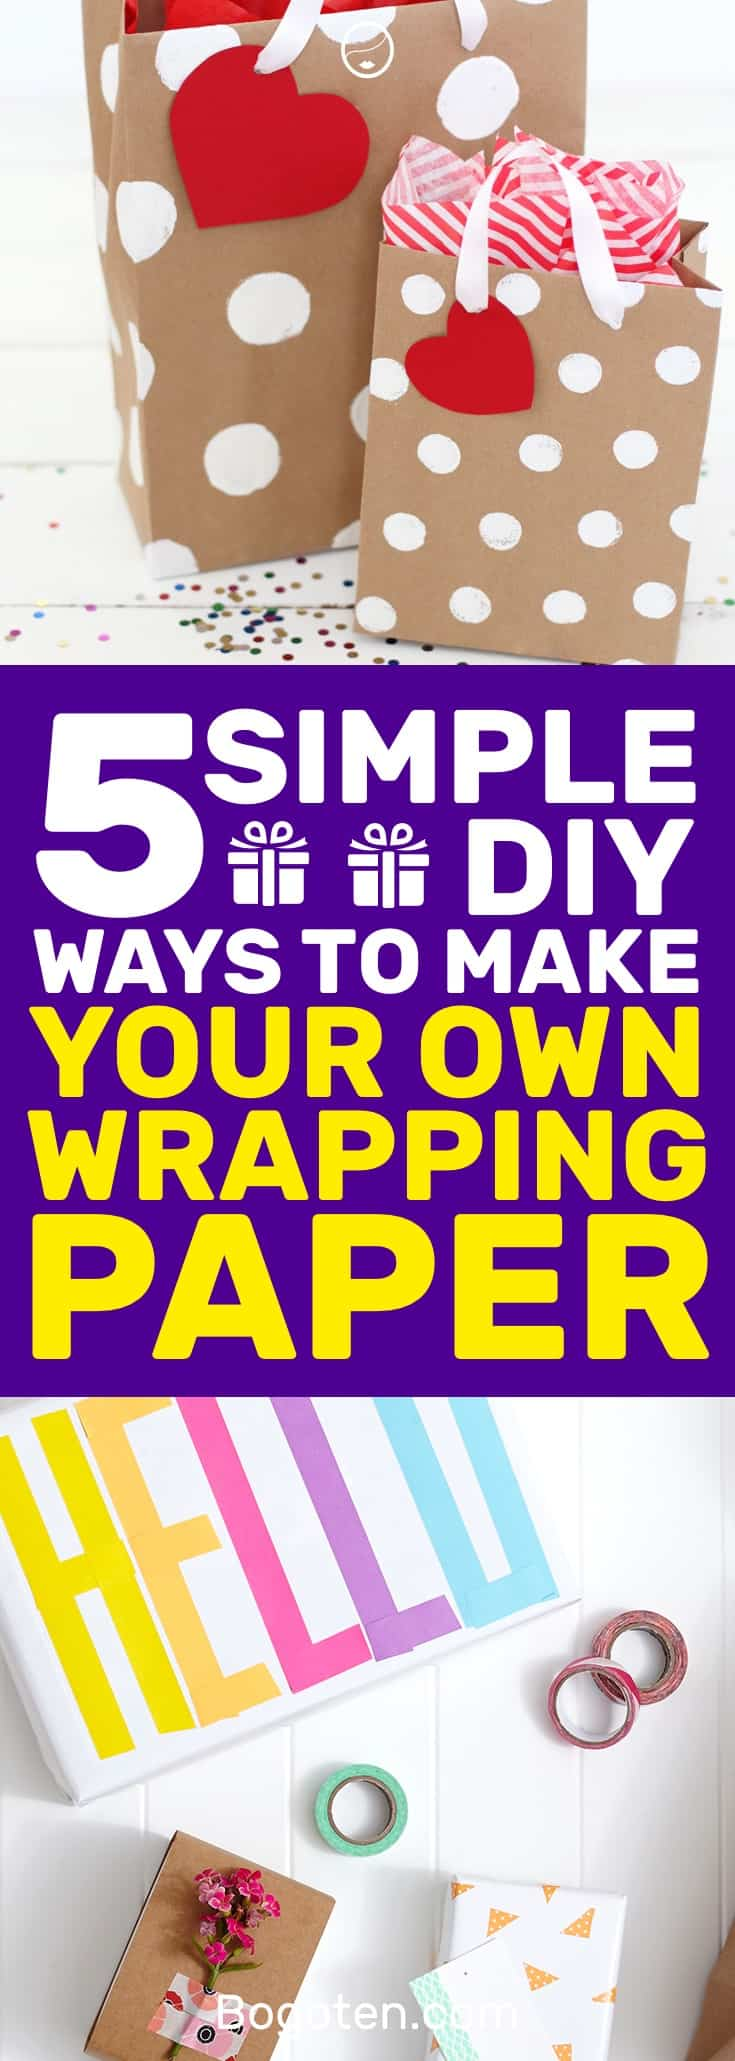 I needed some fresh ideas for wrapping paper and I came across these DIY wrapping paper ideas that will work splendidly. #DIY #DIYCrafts